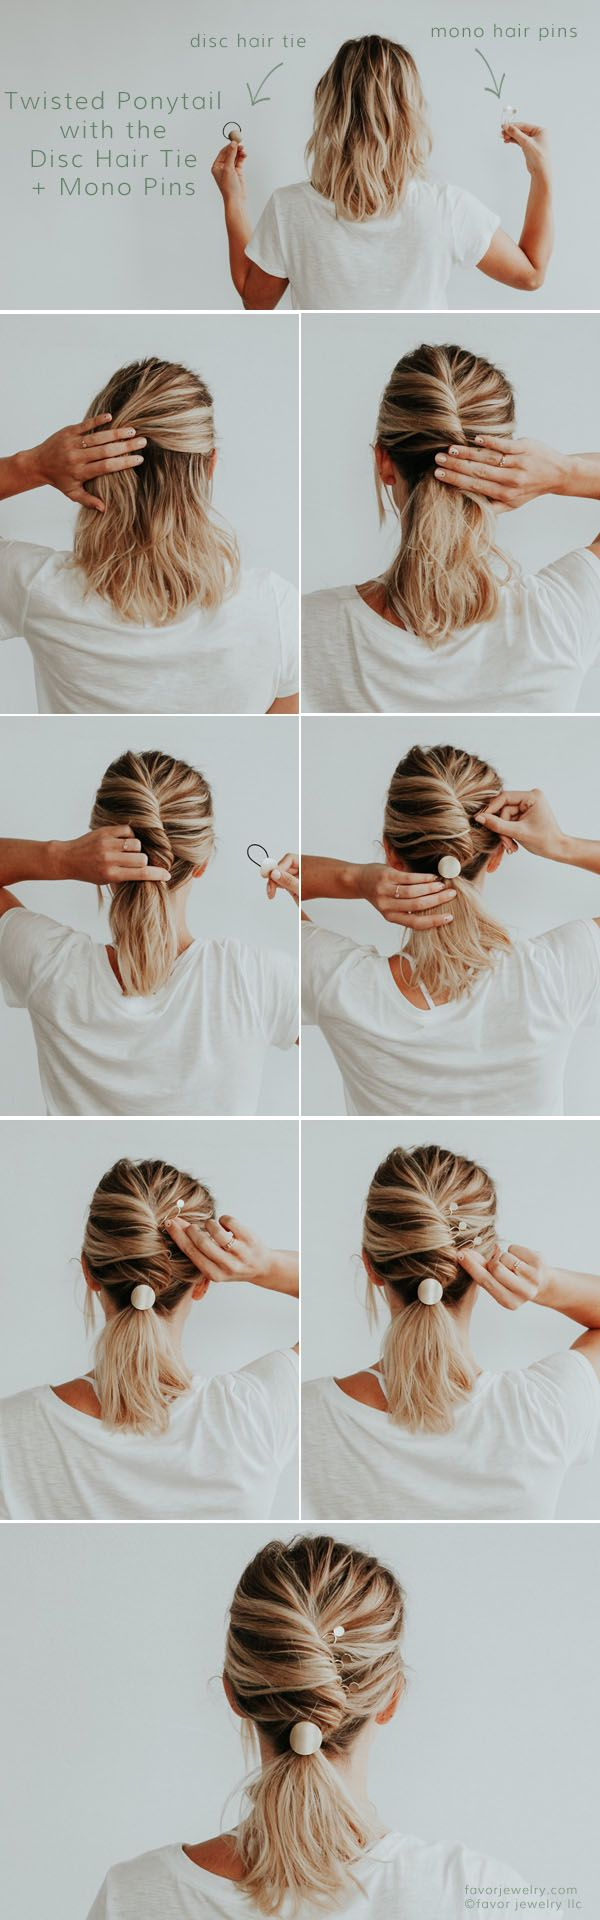 easy date night hair